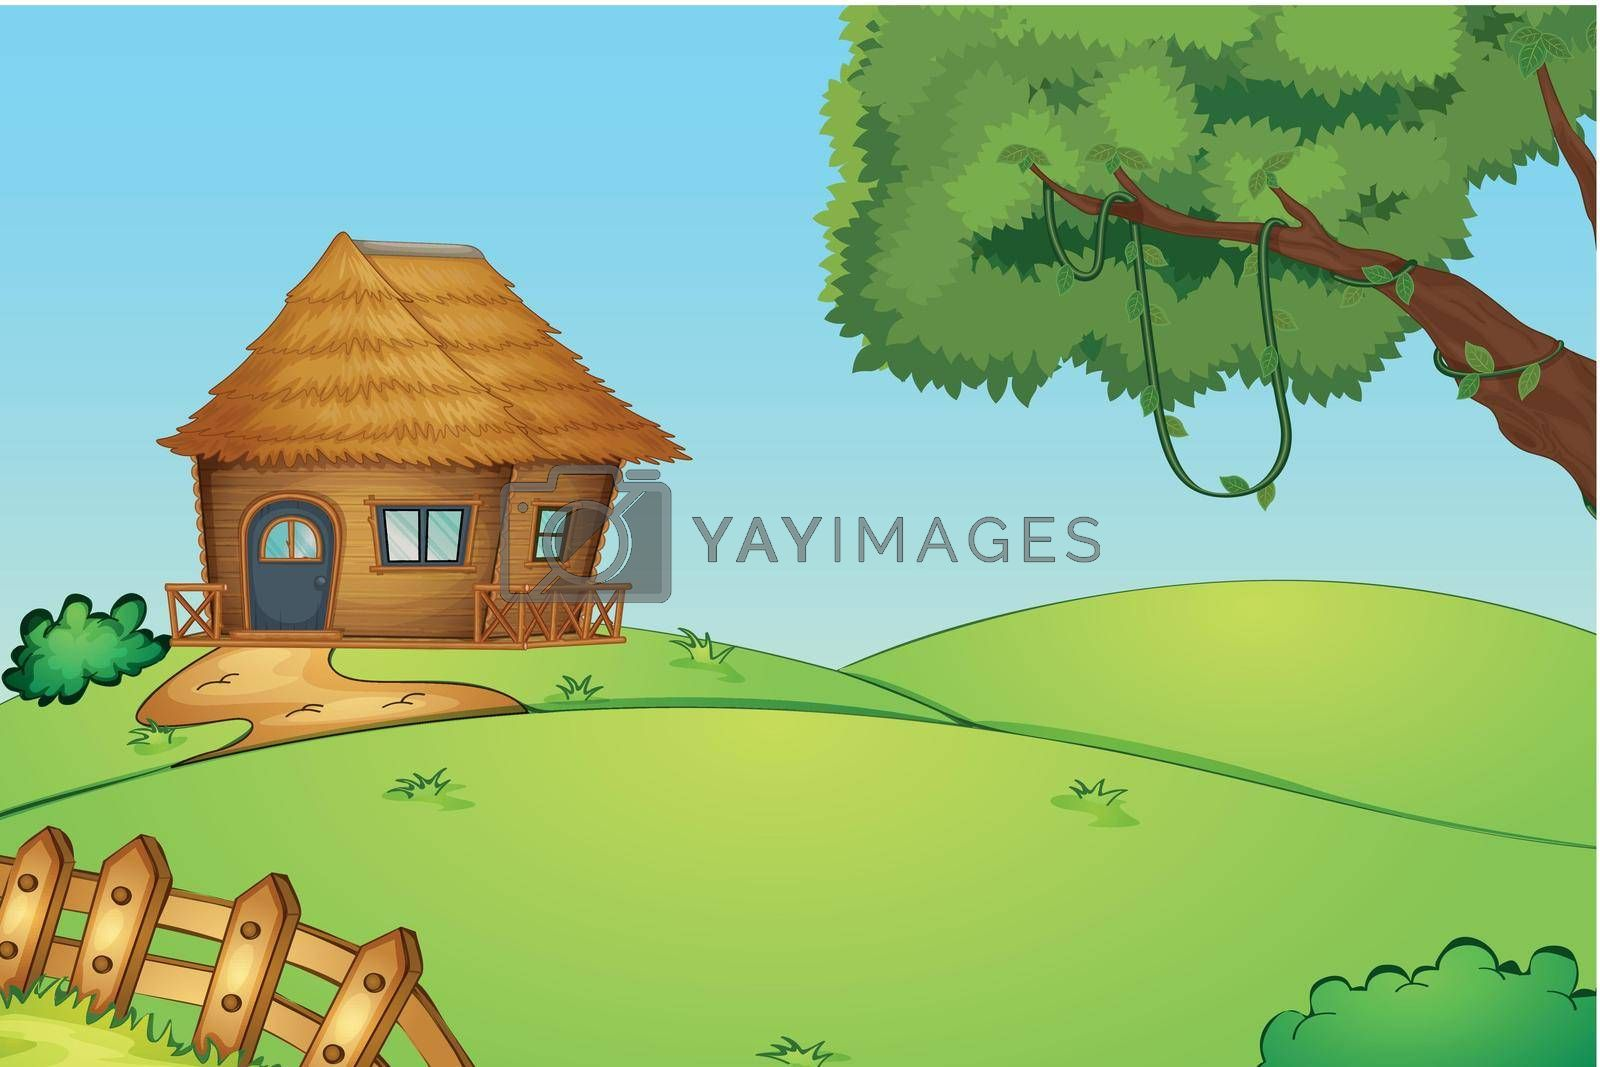 Illustration of a house on a hill